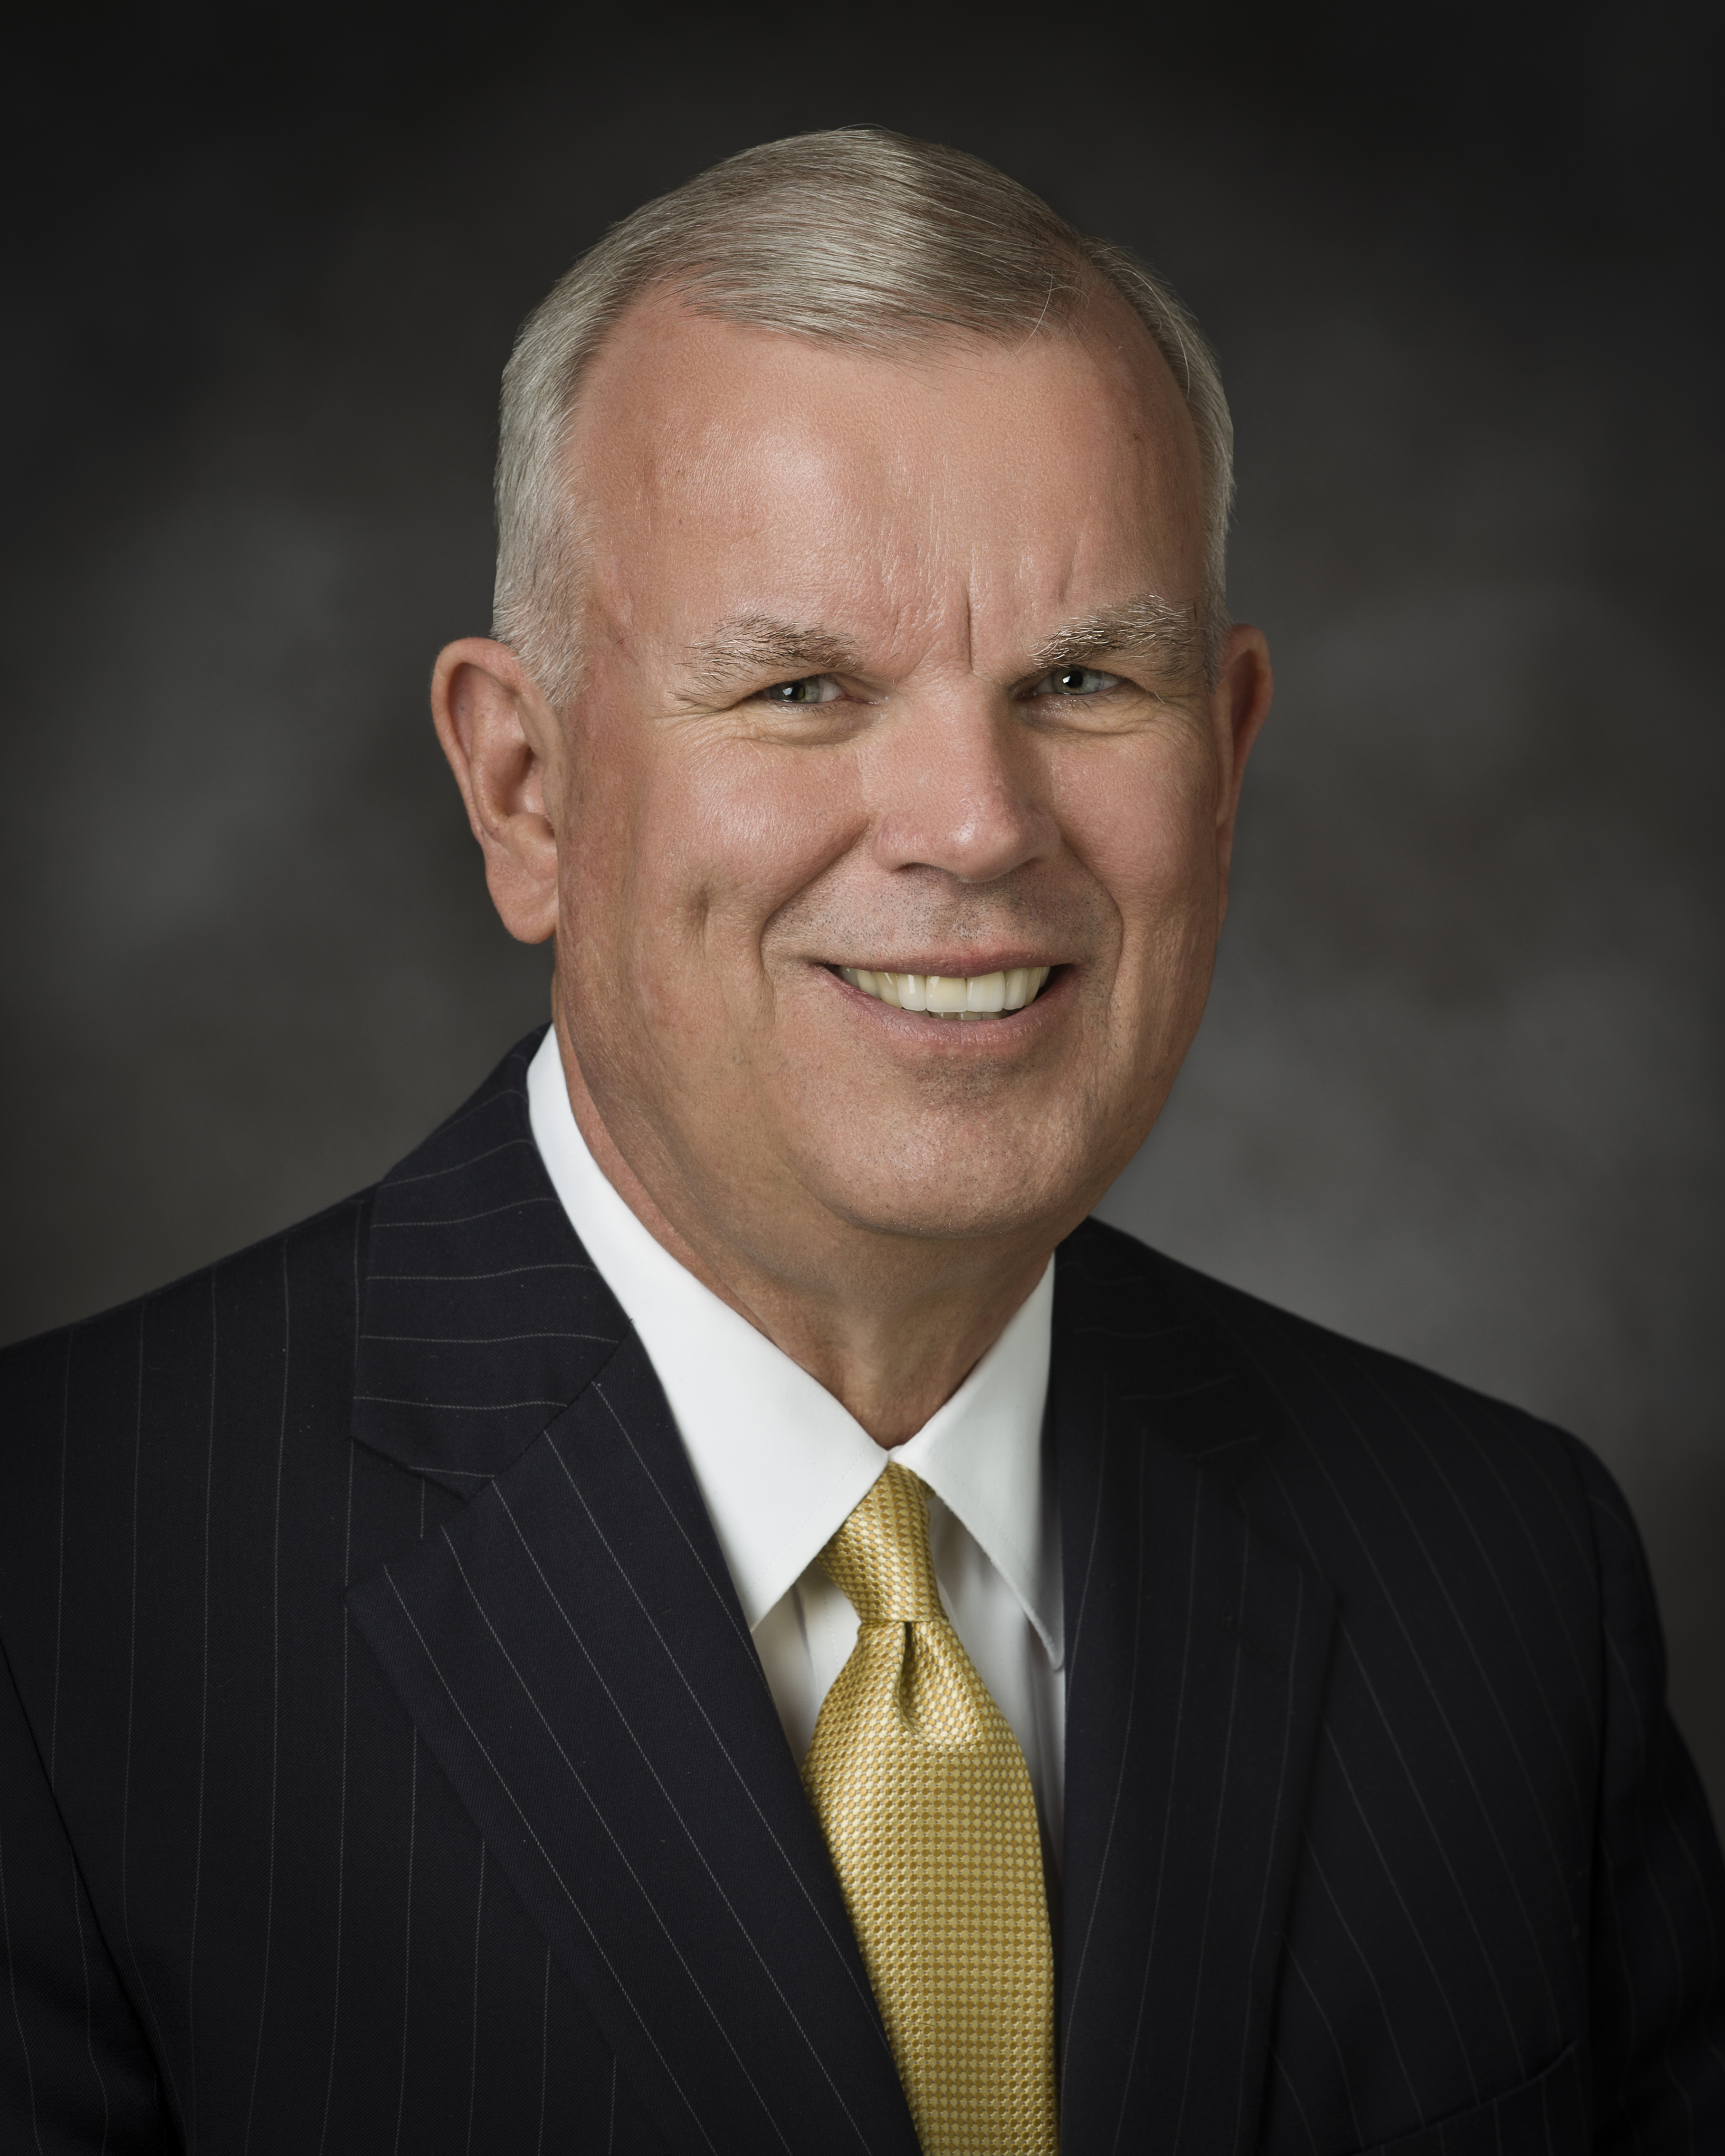 Elder Steven E. Snow, a General Authority Seventy, currently serves as Church Historian and Recorder.